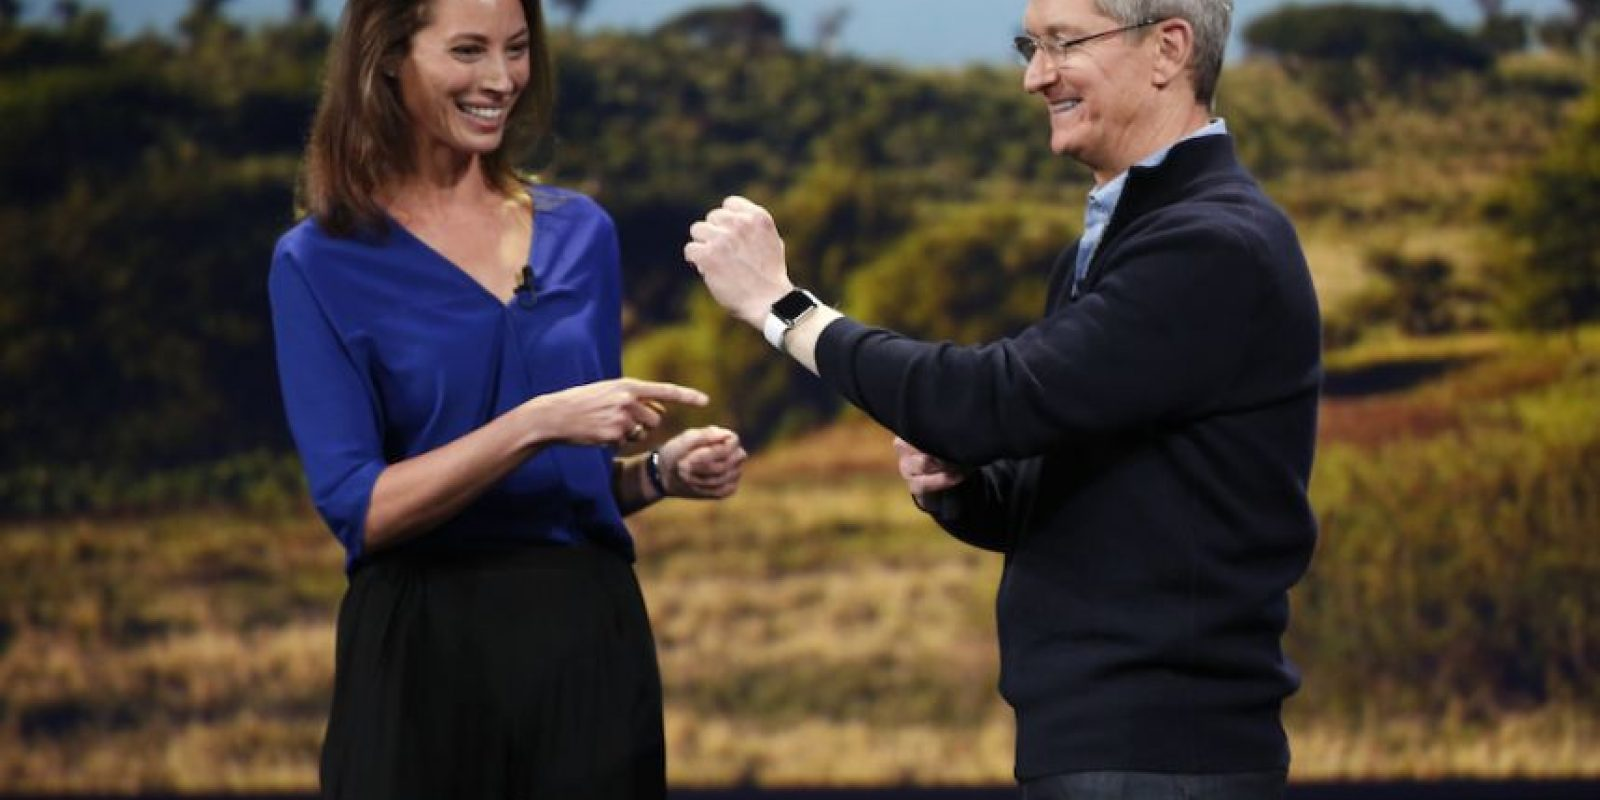 Así lucirá el Apple Watch en la muñeca. Foto: Getty Images